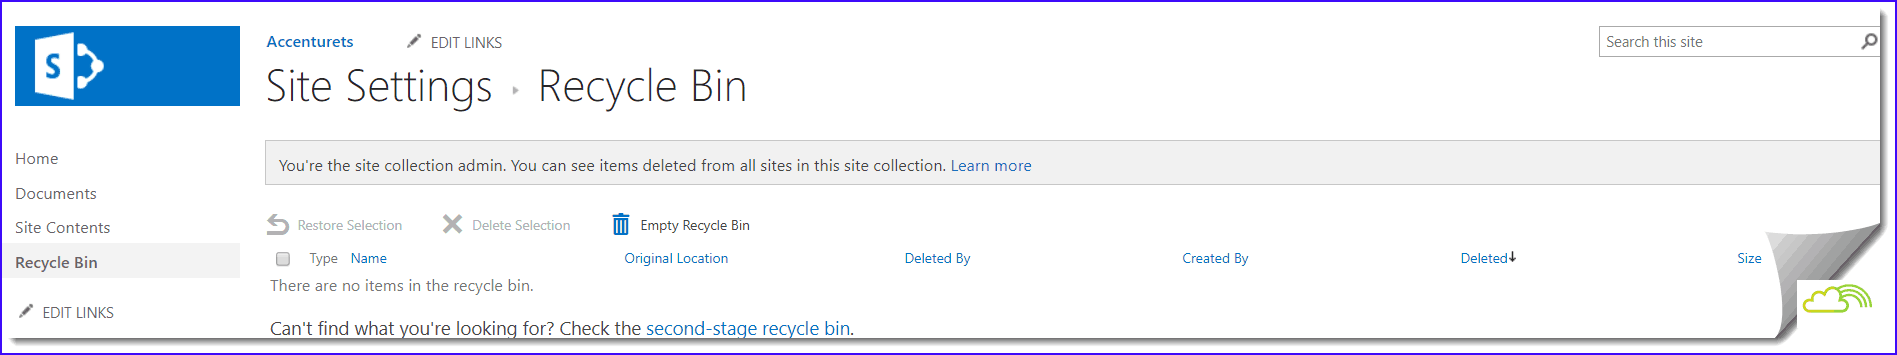 sharepoint 2016 team site recycle bin